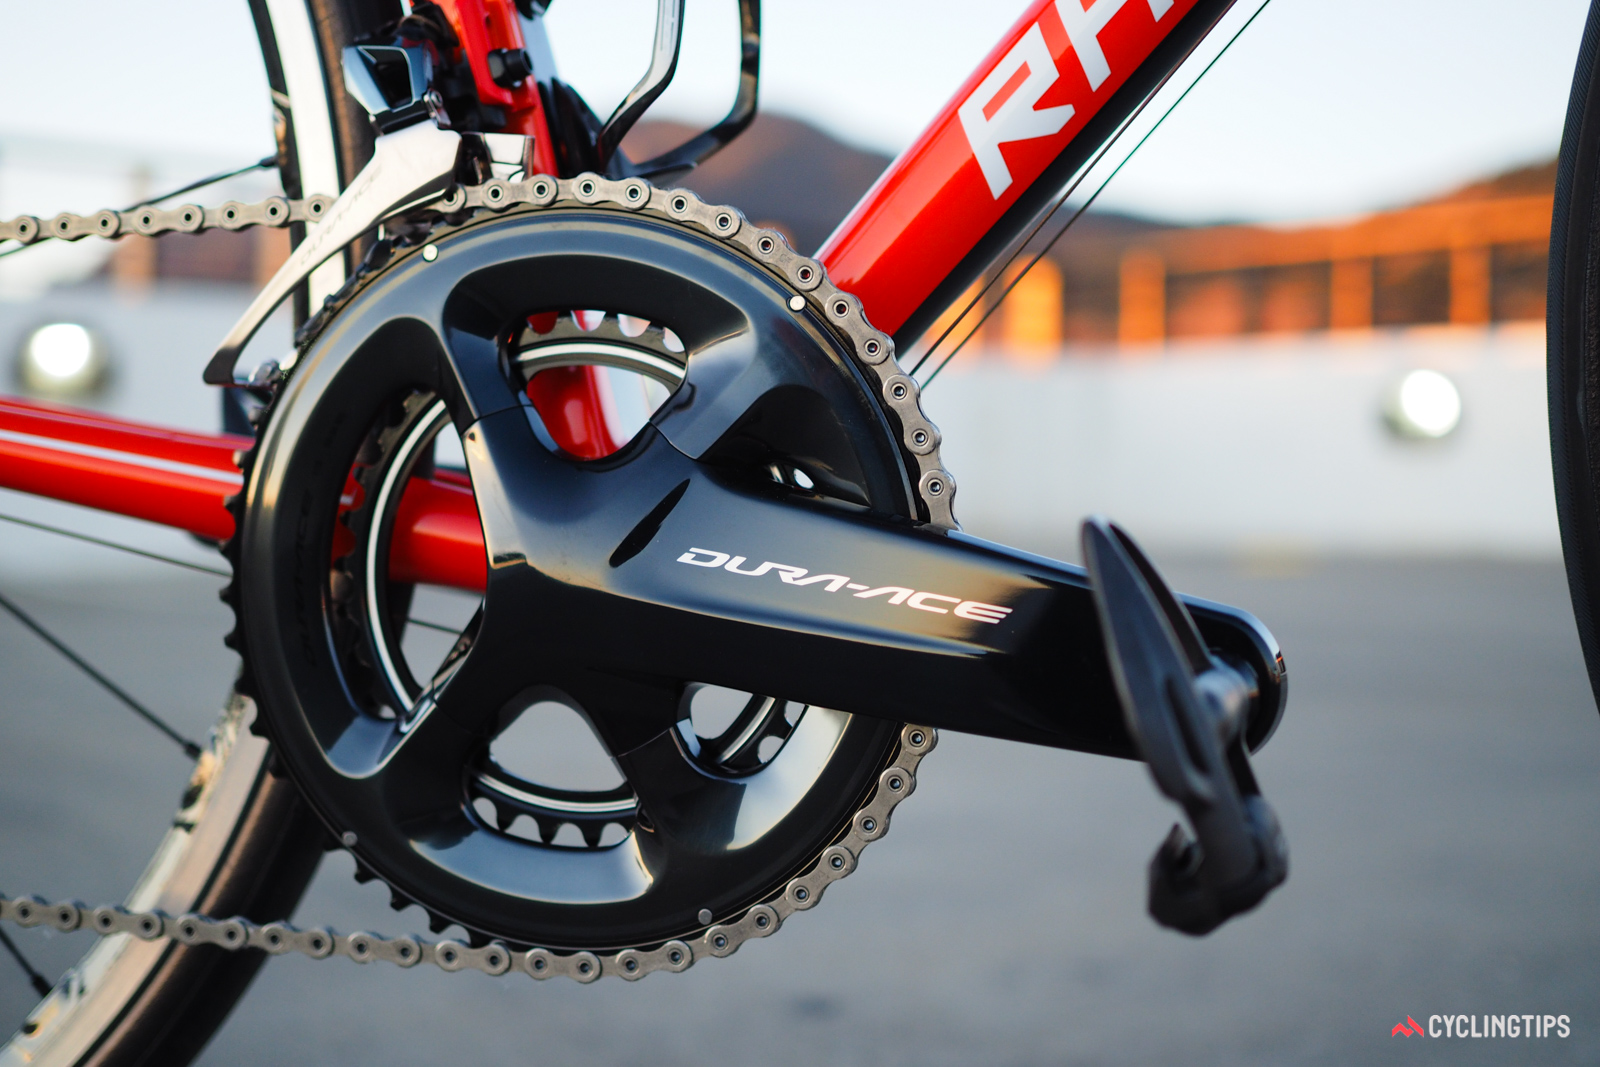 The new Shimano Dura-Ace 9100 crankset has gained an absolutely massive arm profile. The shape may be polarizing to some, but the dark finish will likely be even more so.